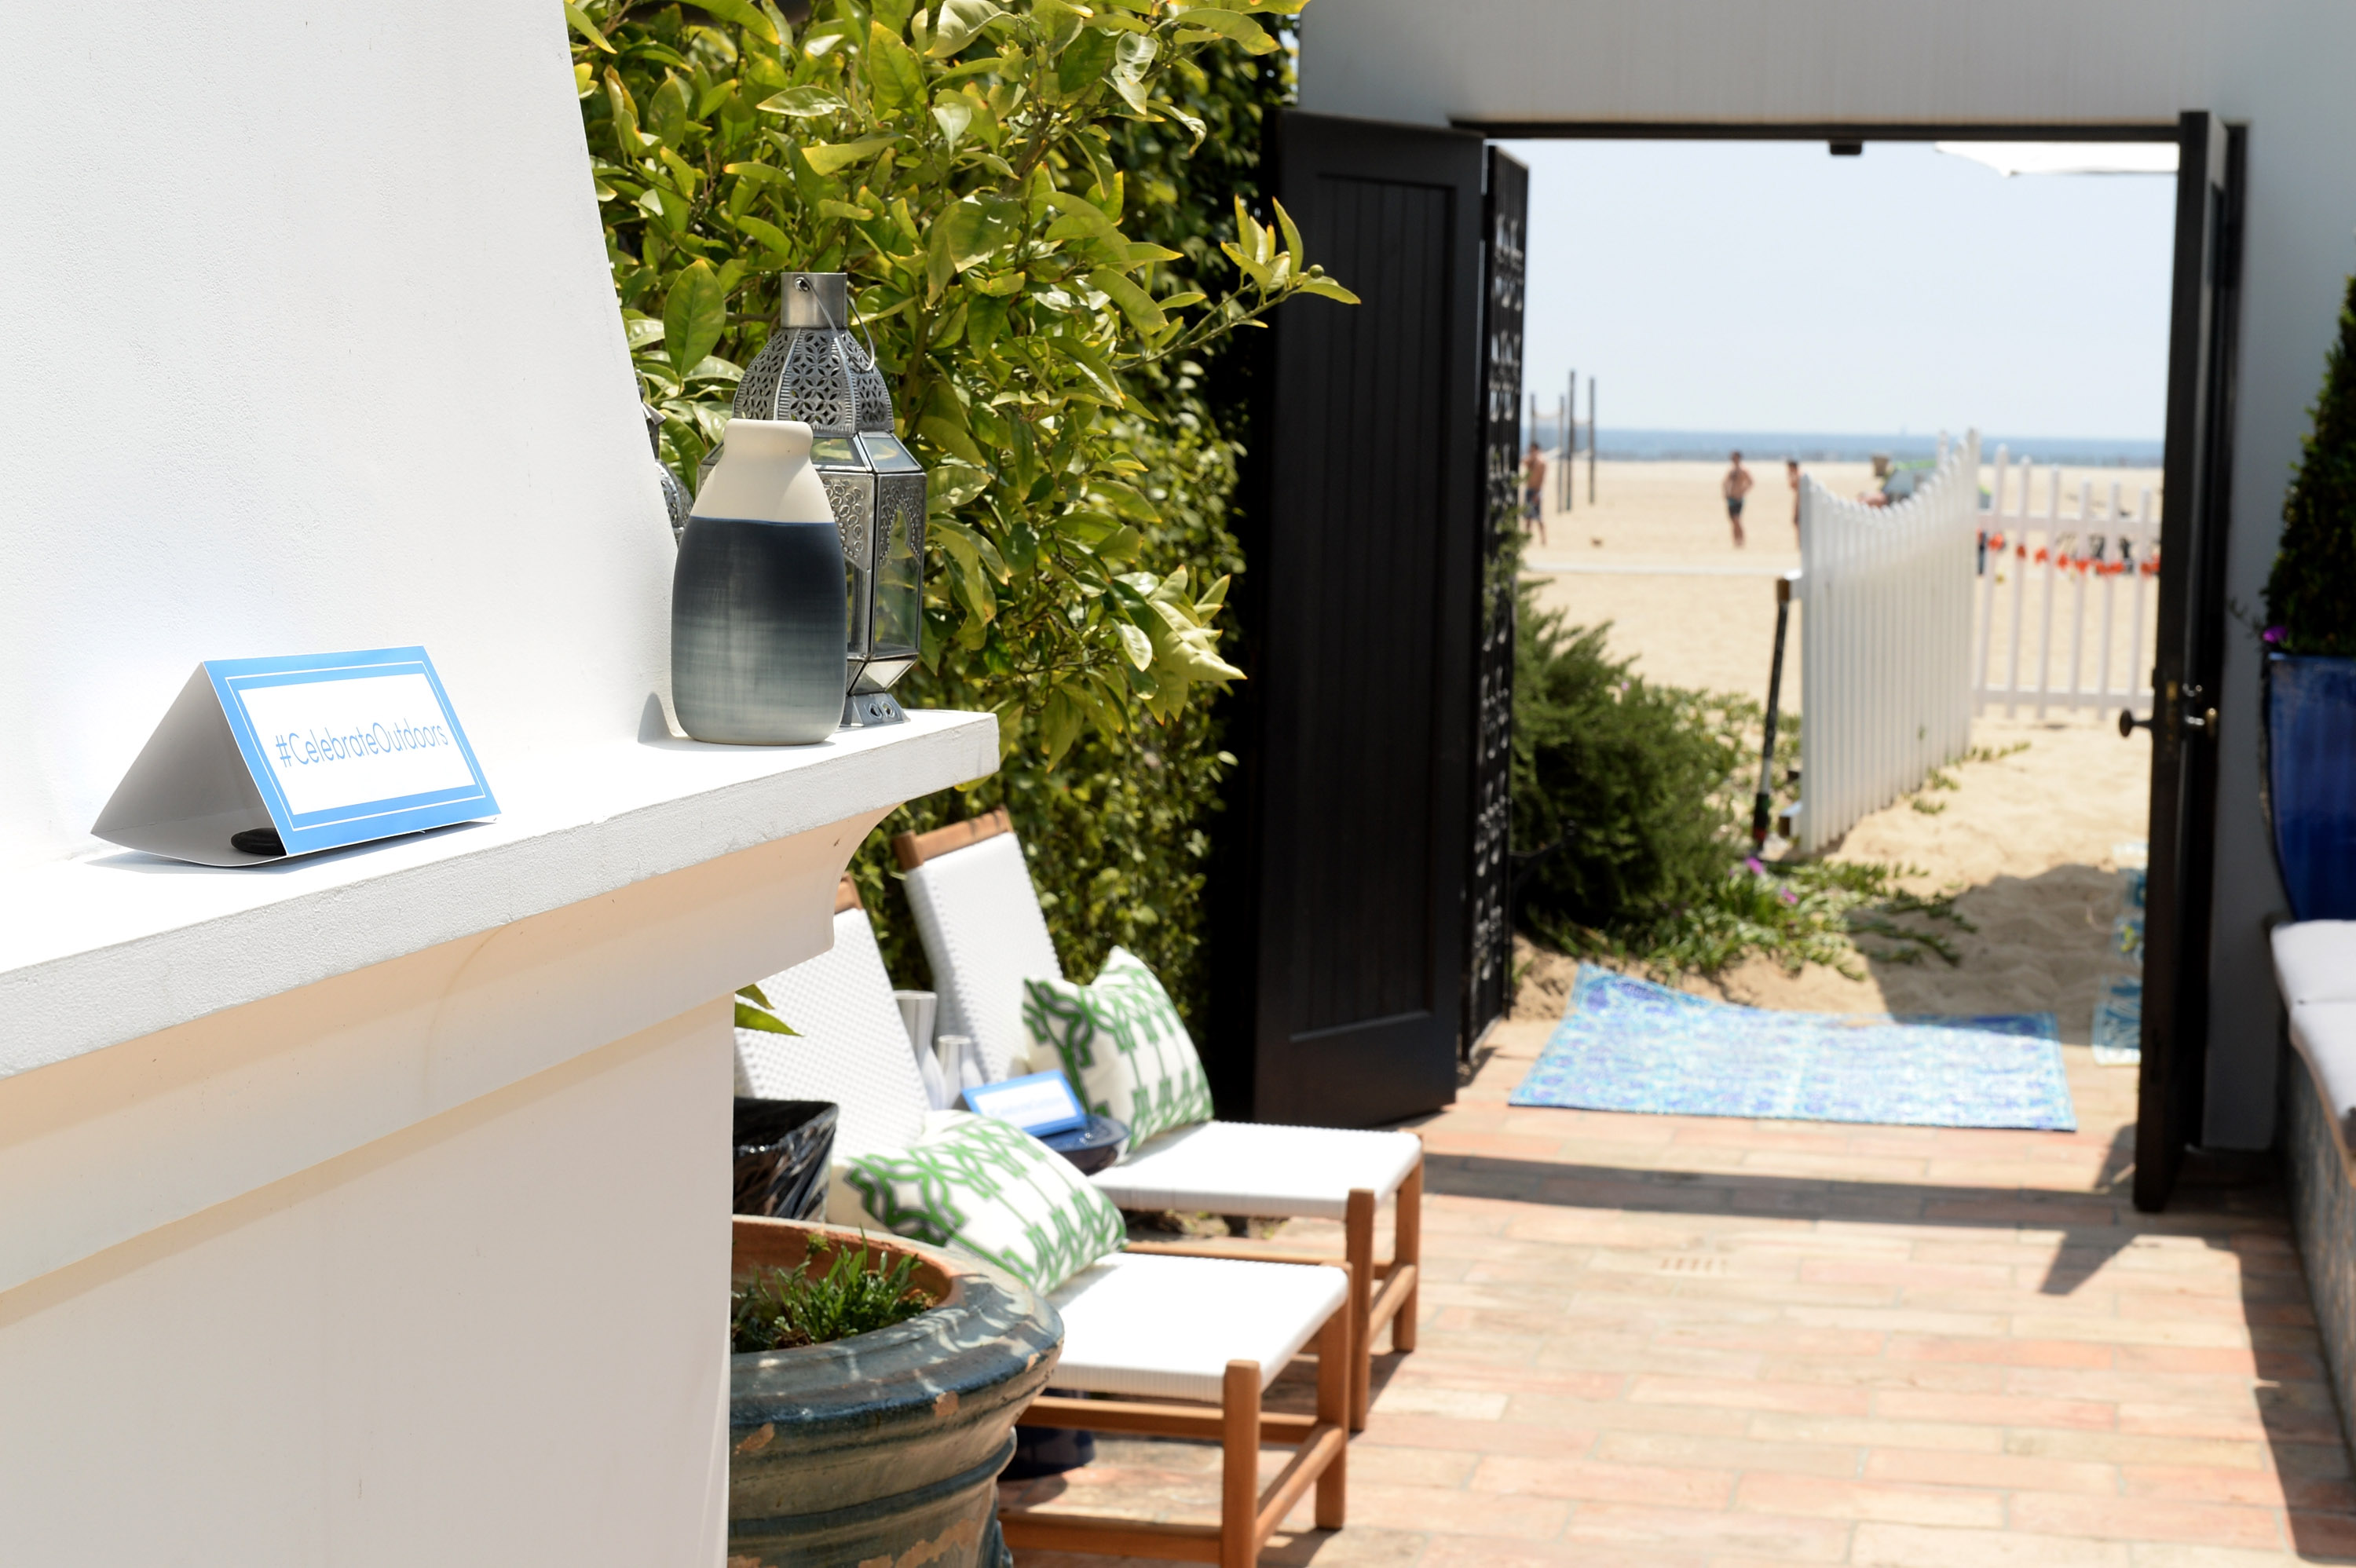 """SANTA MONICA, CA - MAY 14: General view of atmosphere at Cost Plus World Market's Santa Monica Beach House Party #Celebrate Outdoors on May 14, 2016 in Santa Monica, California. (Photo by Michael Kovac/Getty Images for Cost Plus World Market)"""